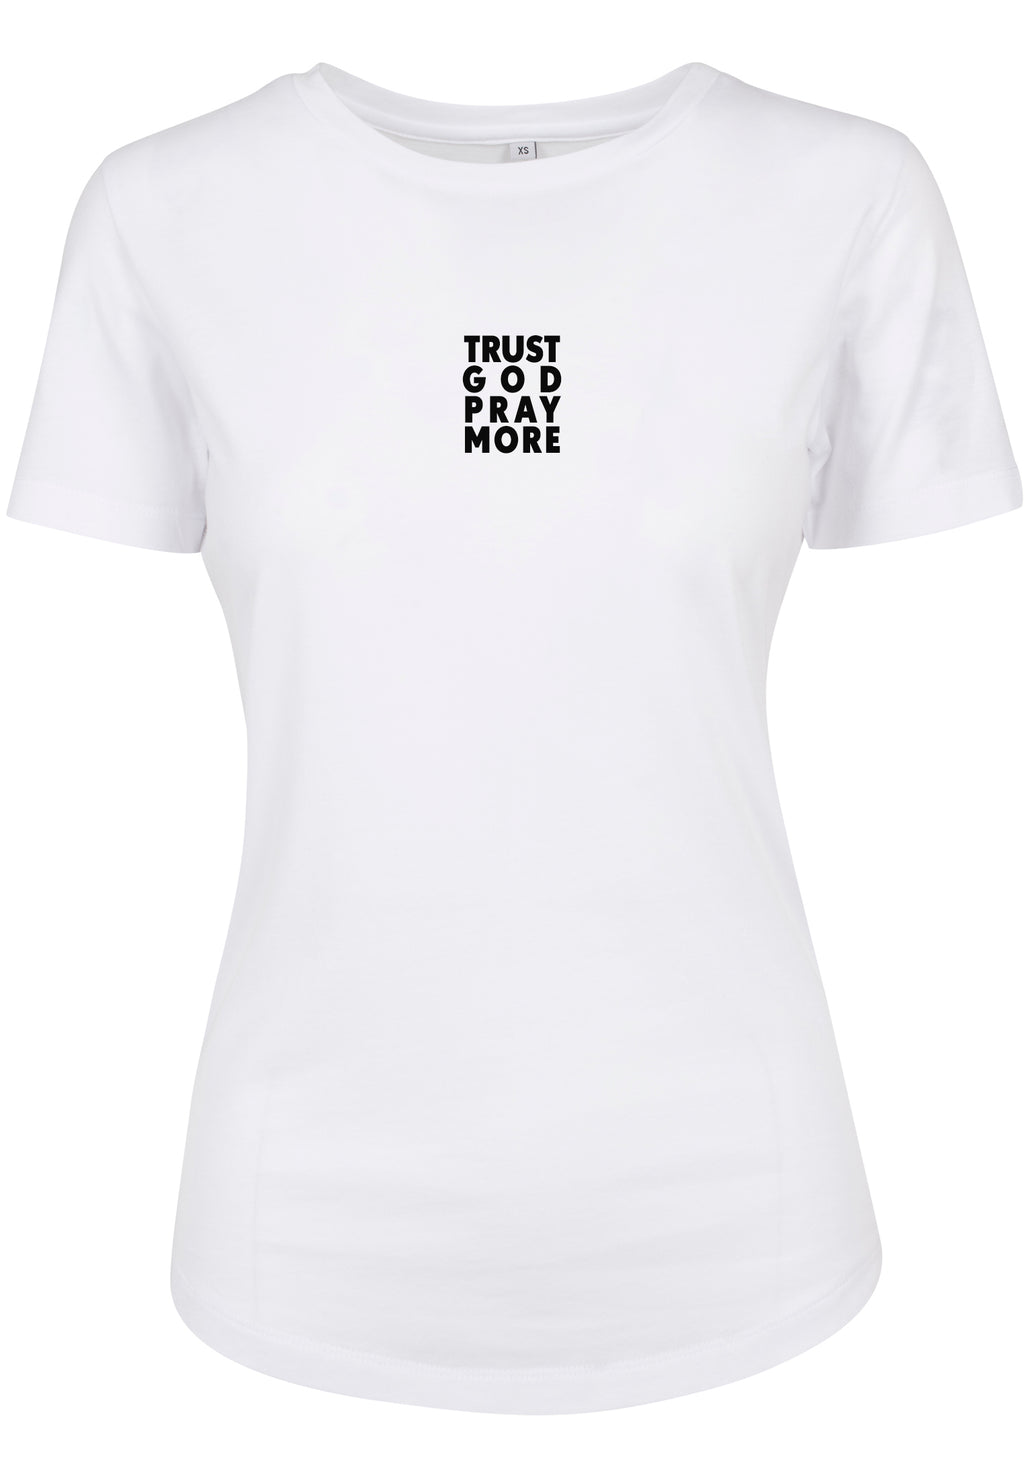 Womens TRUST GOD Fitted Tee (White)